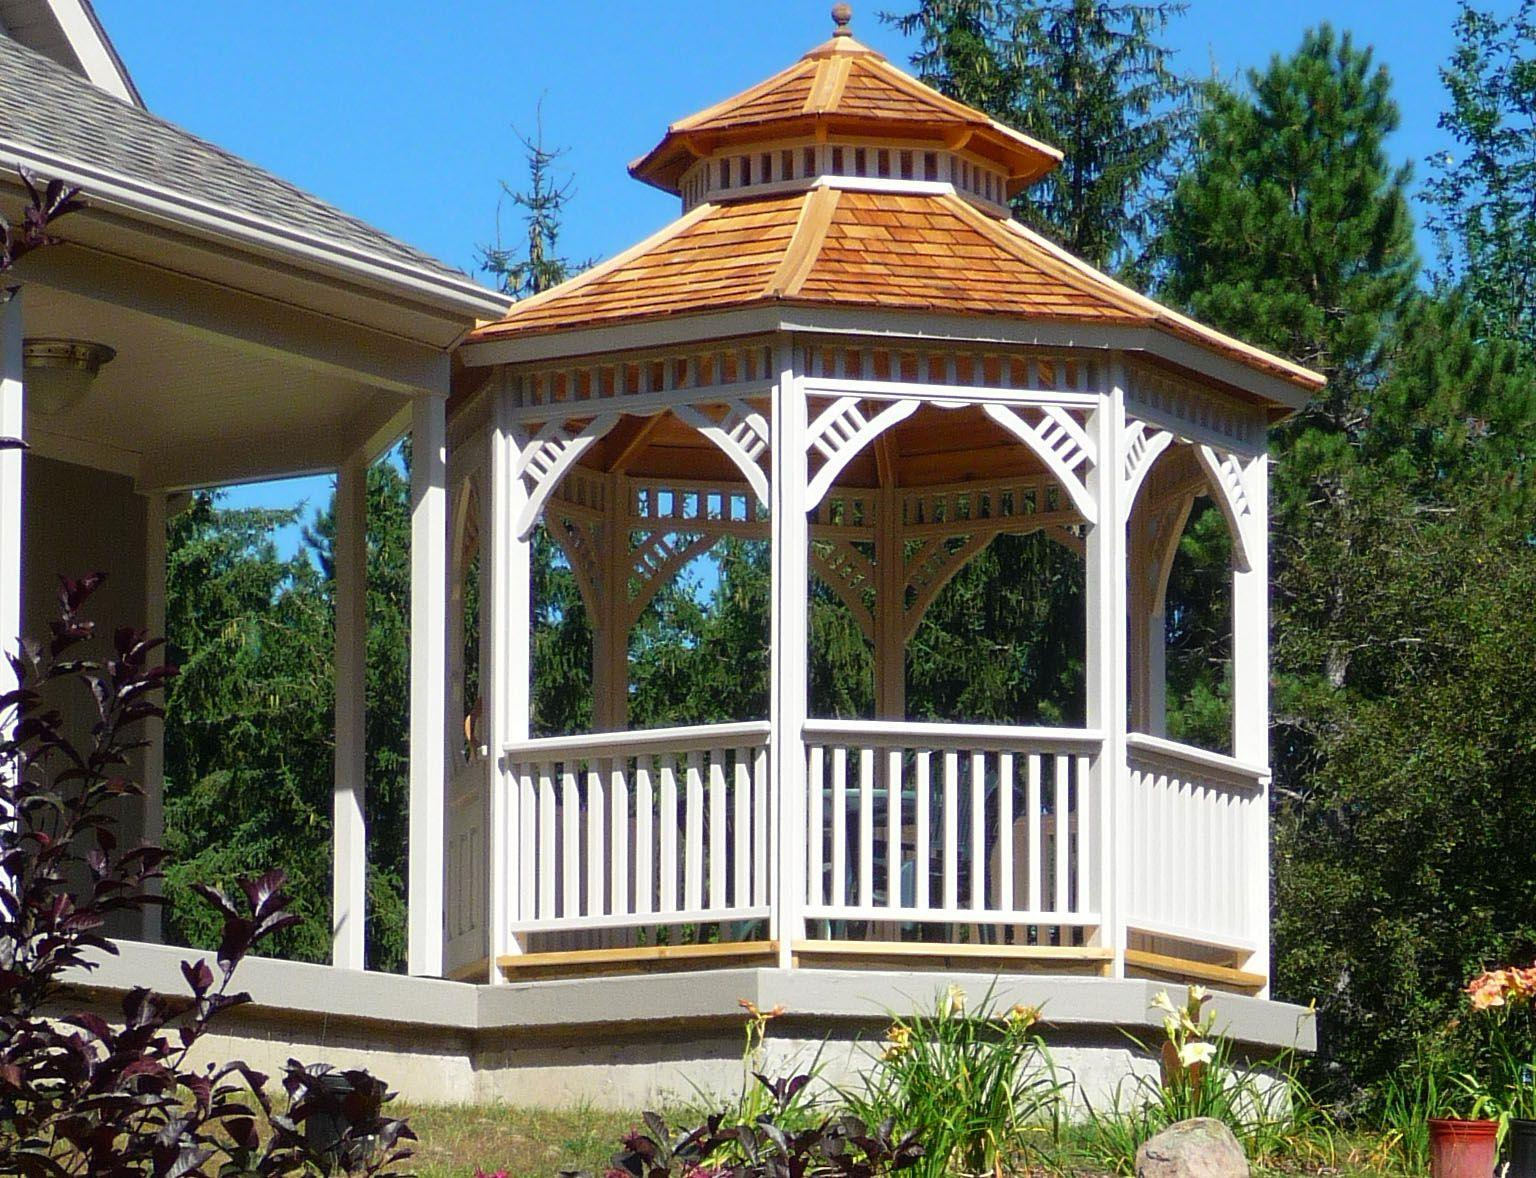 Victorian gazebo photo contest honorable mentions Summerwood  ID Number 192172